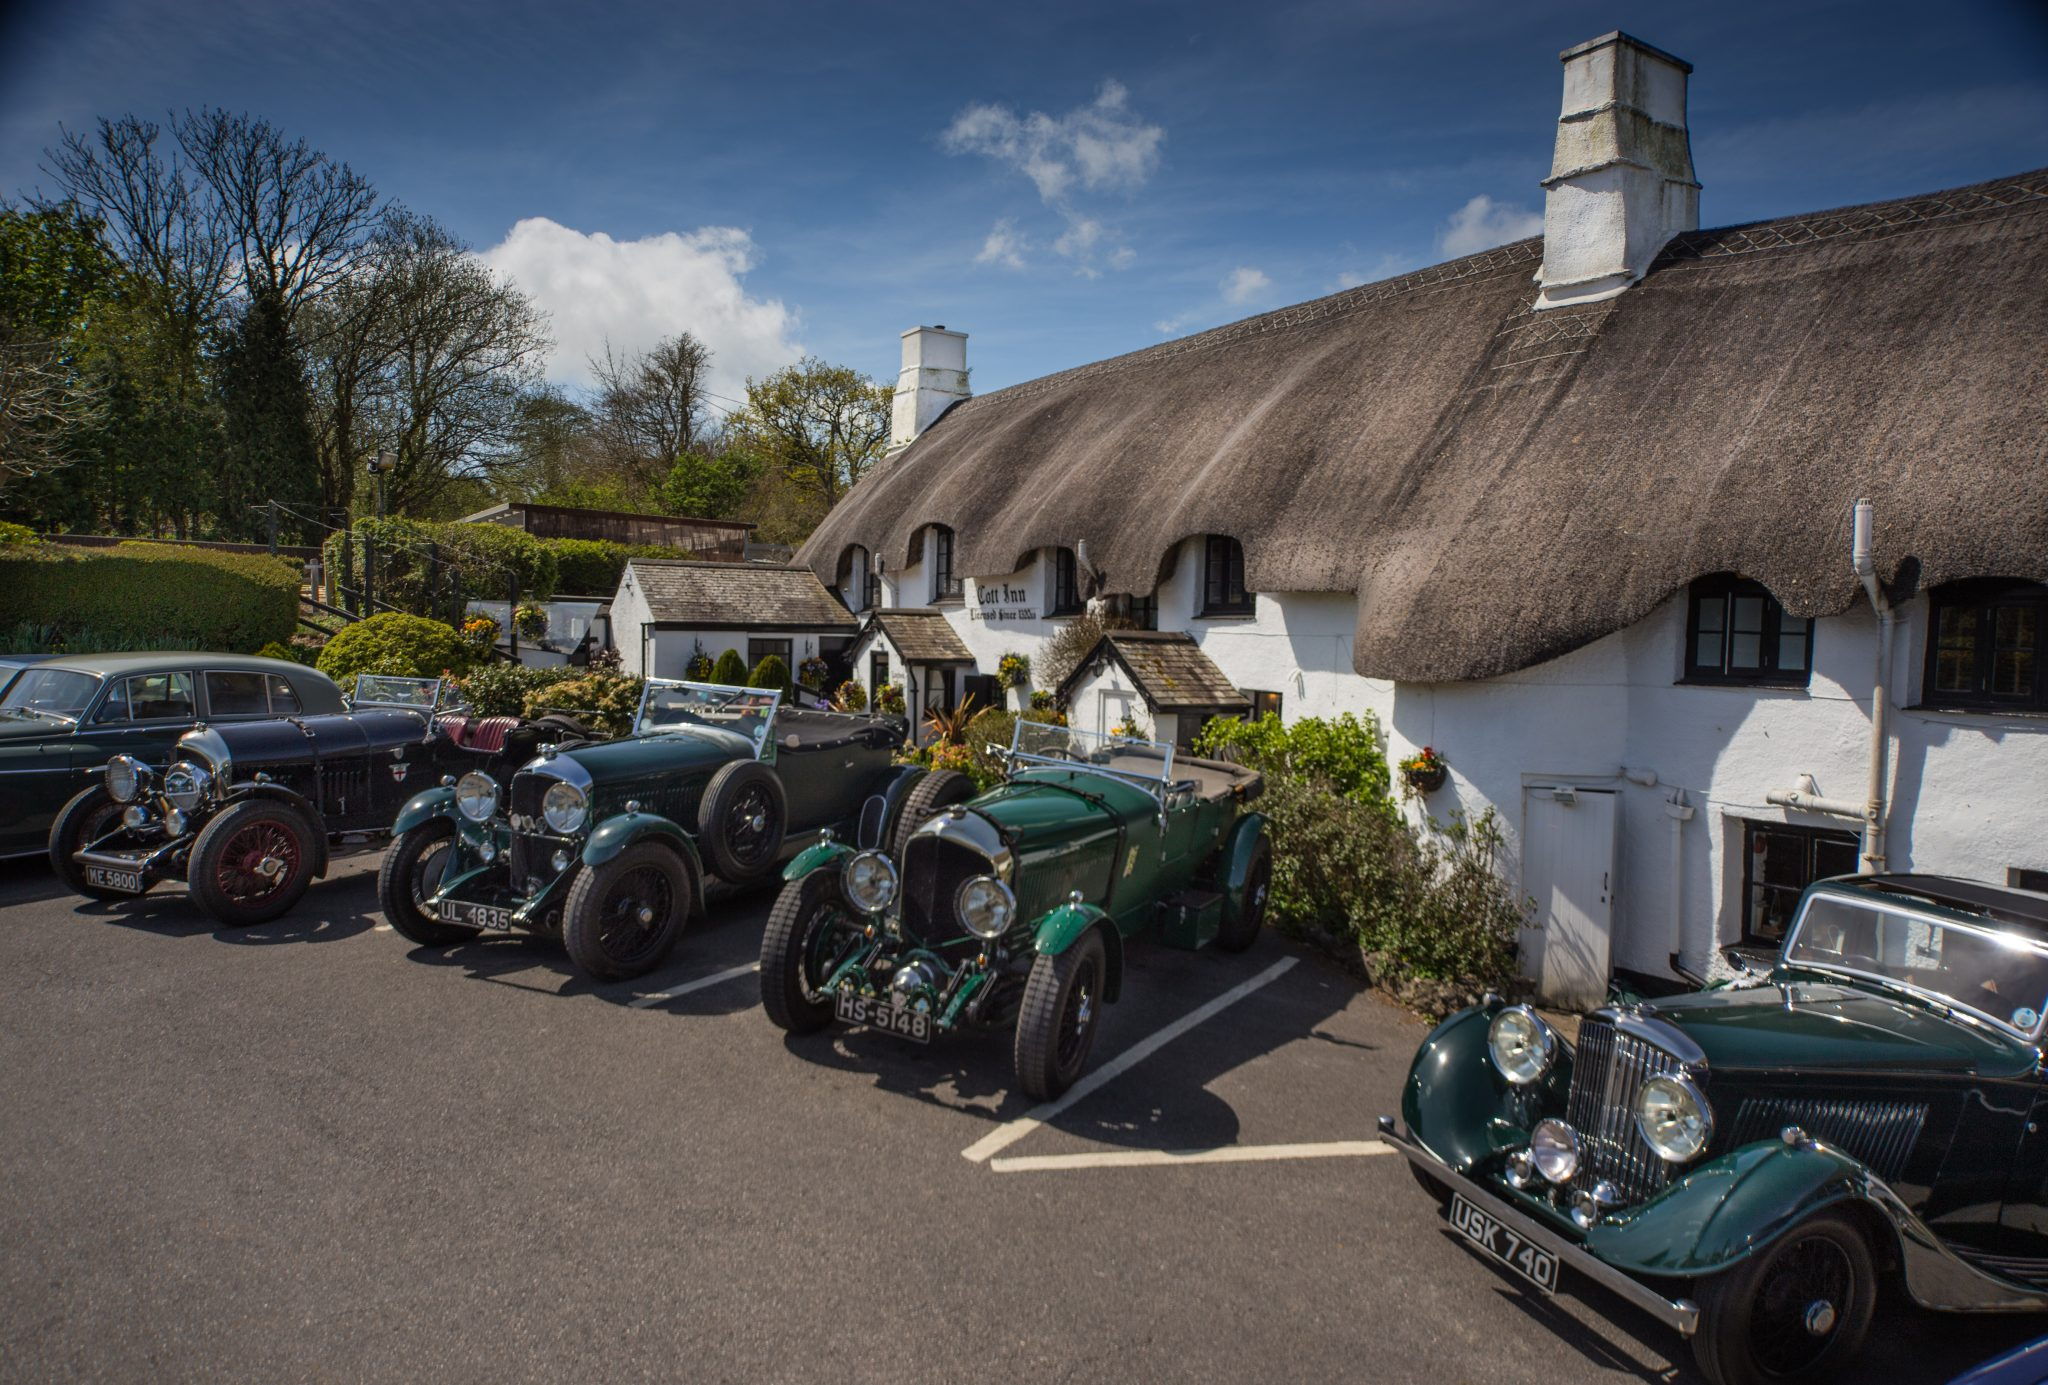 Bentley 3 Litre and Blower Bentley's from The Bentley Owners Club line-up outside The Cott Inn, Dartington, Devon. Britain's oldest Country Inn. Carey Marks Photography